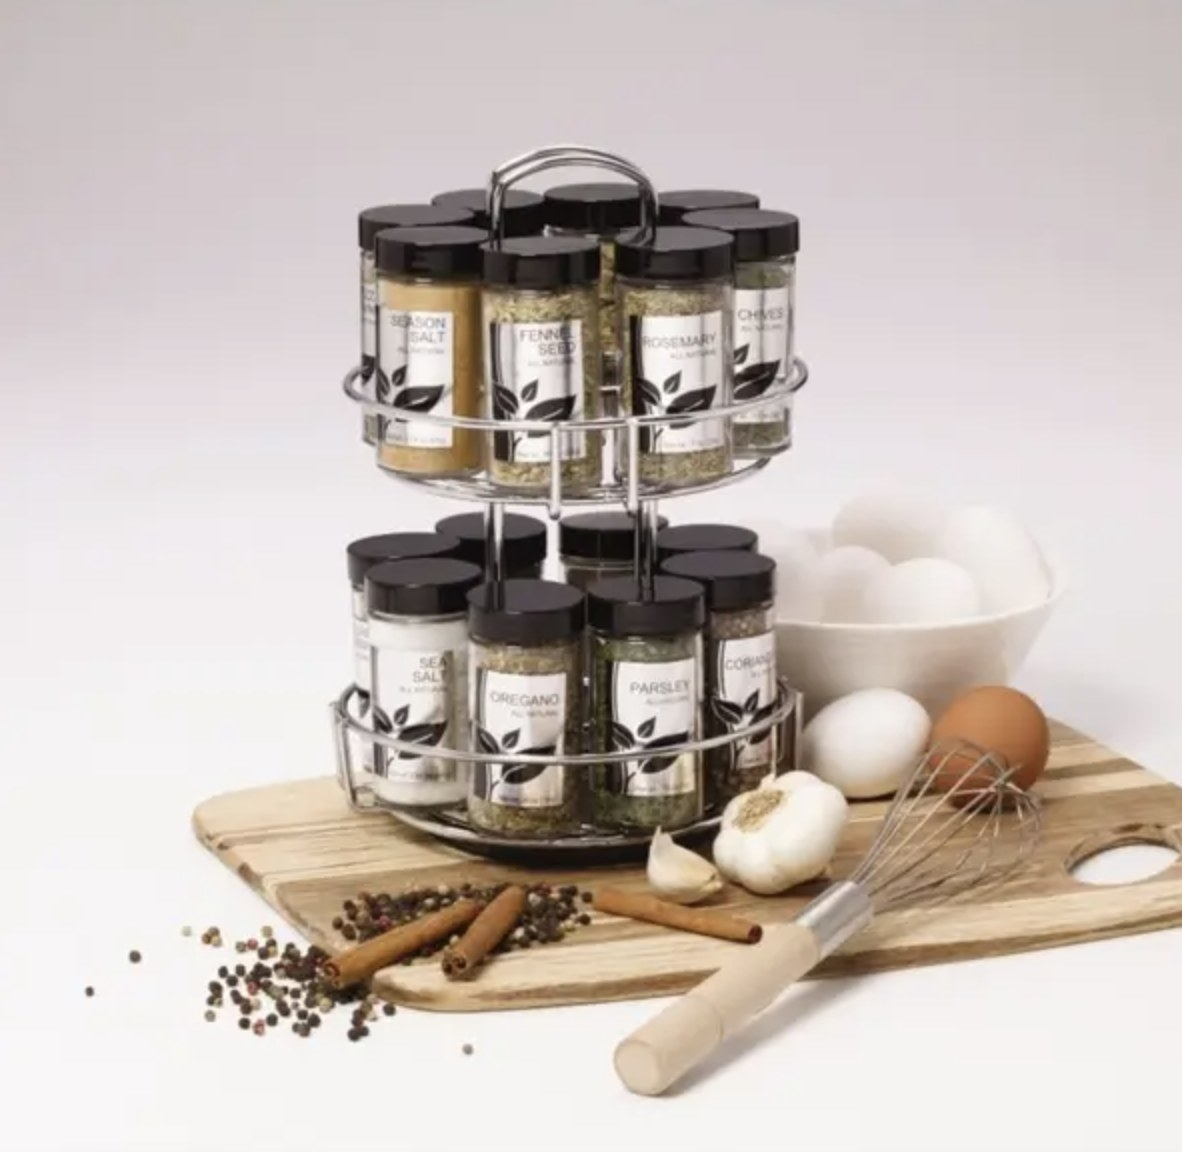 the spice rack with spices on it